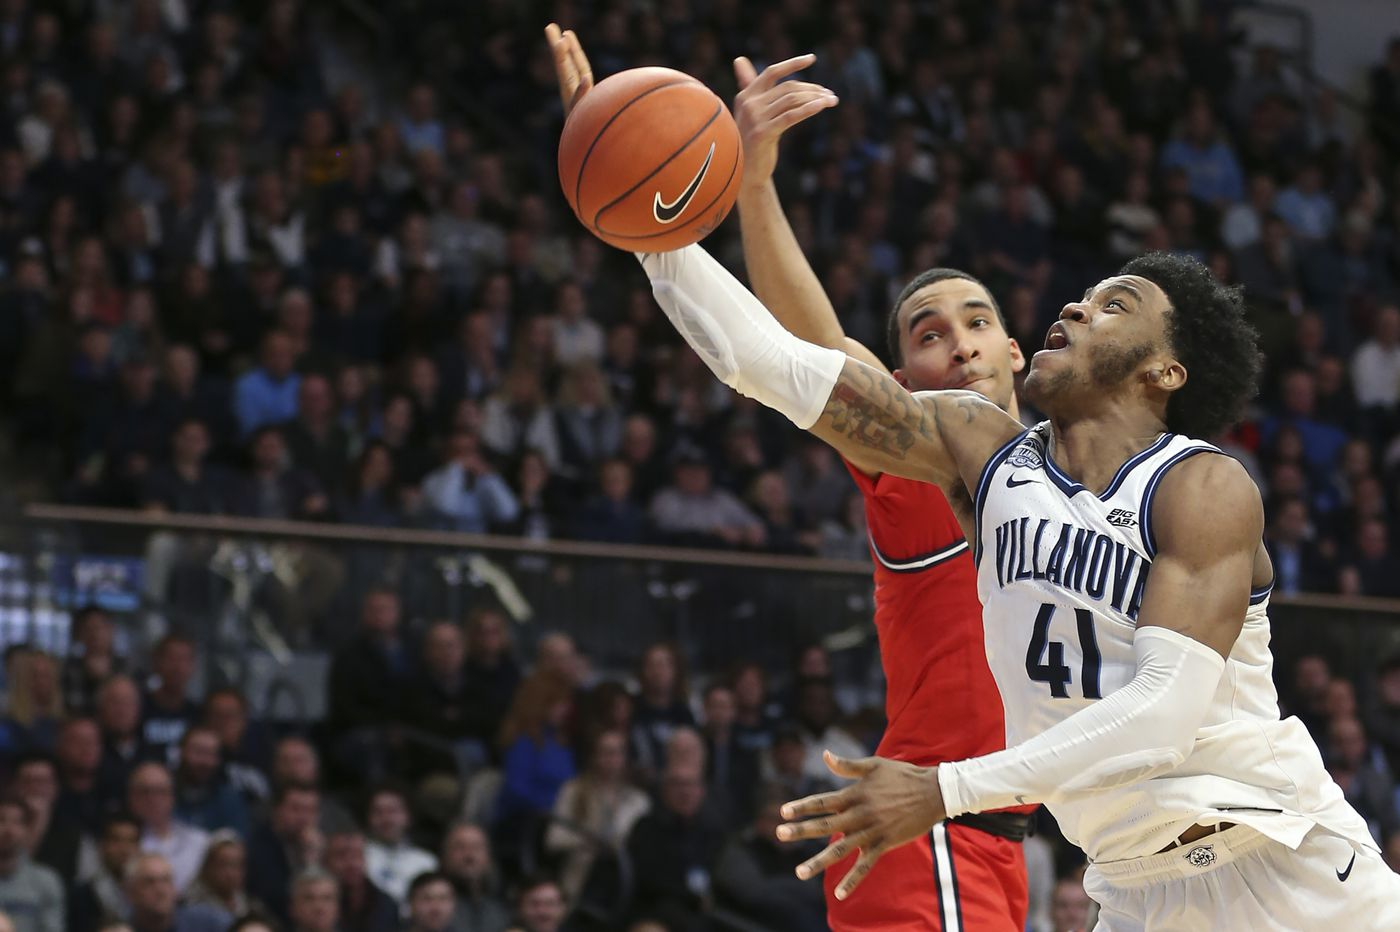 No. 12 Villanova 71, St. John's 60: Stats, highlights and reaction from the Wildcats' fifth consecutive victory